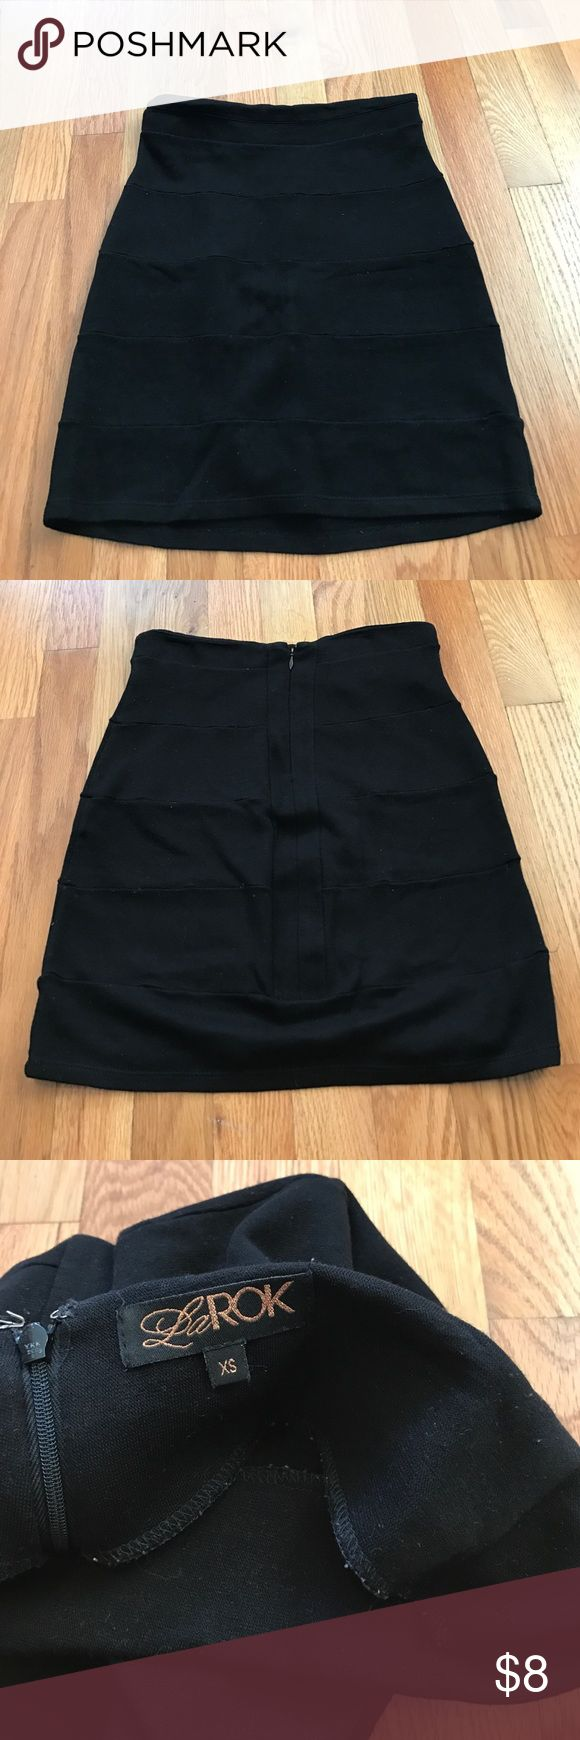 La Rok Bandage skirt Black form fitting high waist bandage skirt. Bought brand new from Nordstrom. It does have a little pilling and is not in brand new condition though it does have plenty of life left. It looks super cute with a fun top tucked in. Skirts Mini